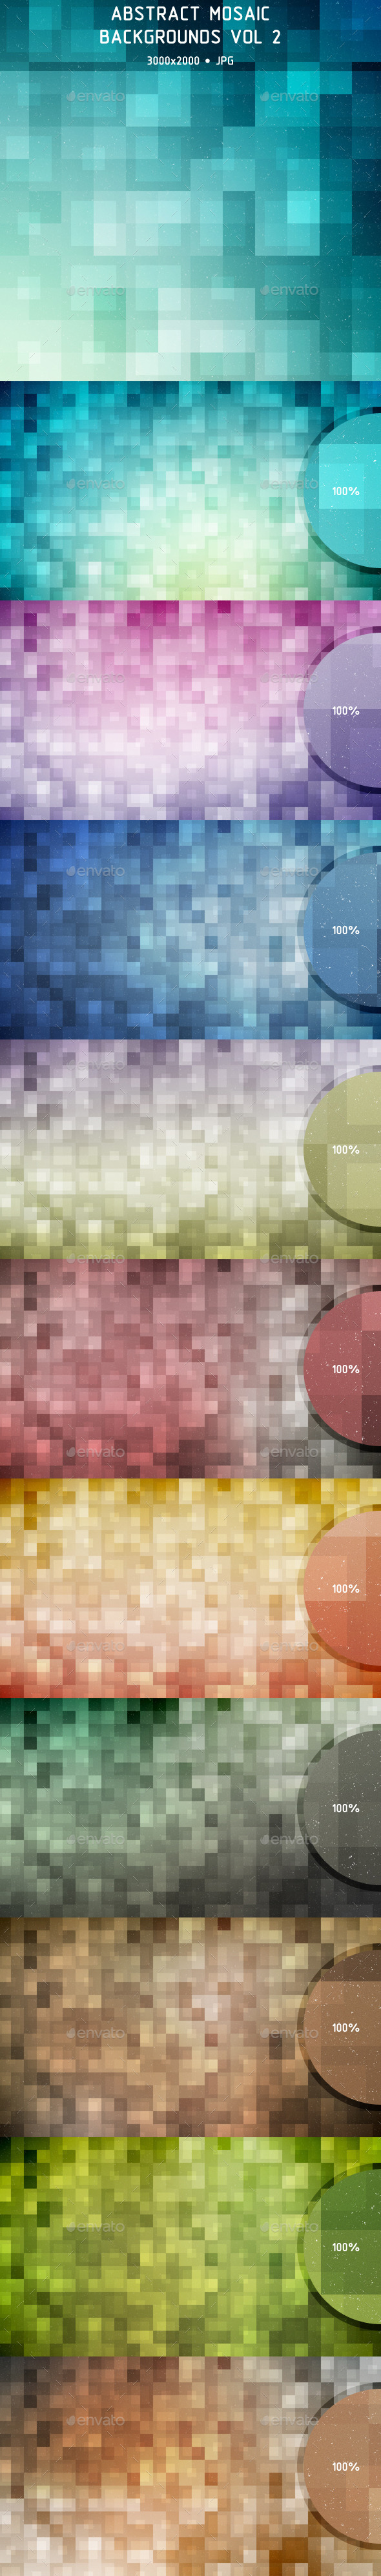 Abstract Mosaic Backgrounds Vol 2 - Backgrounds Graphics